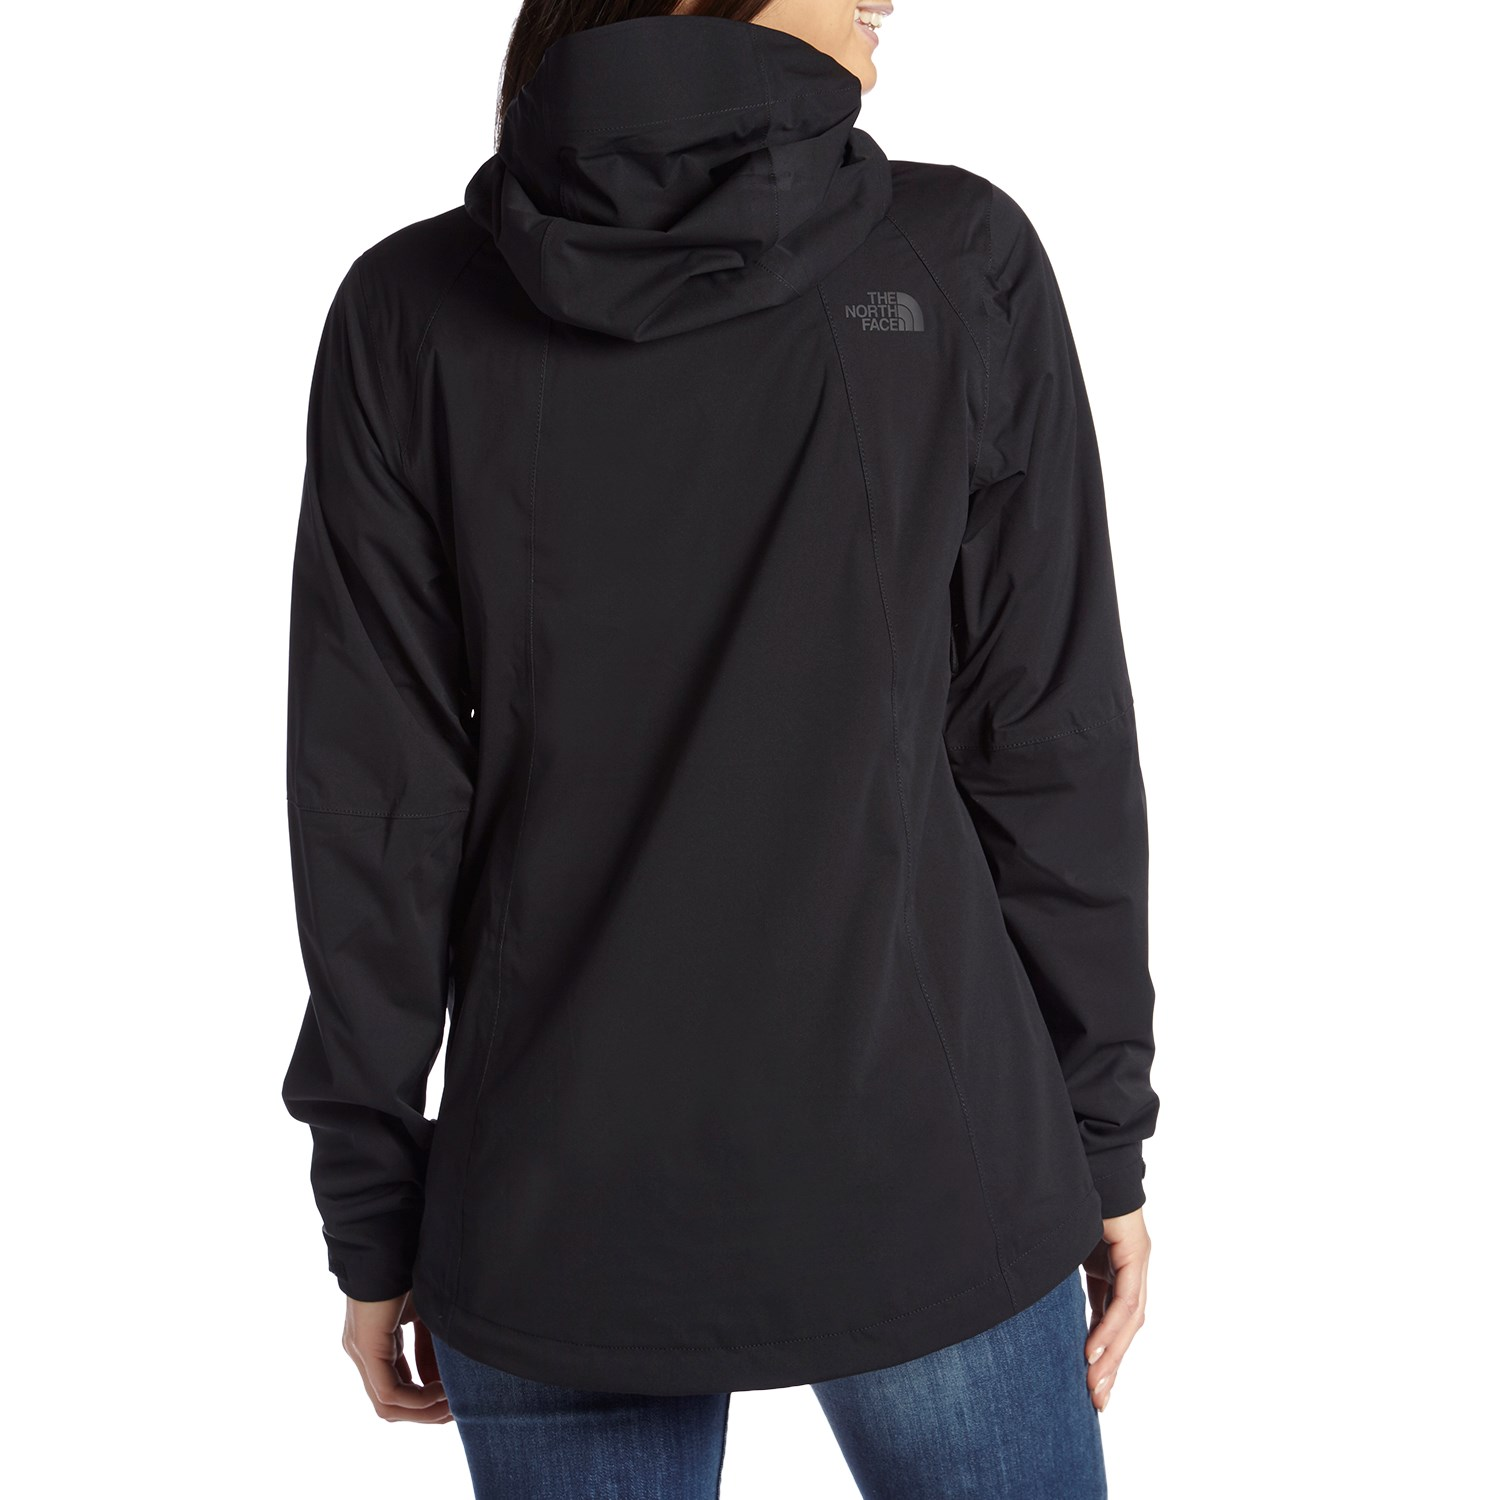 03a24f7a6c The North Face Allproof Stretch Jacket - Women s